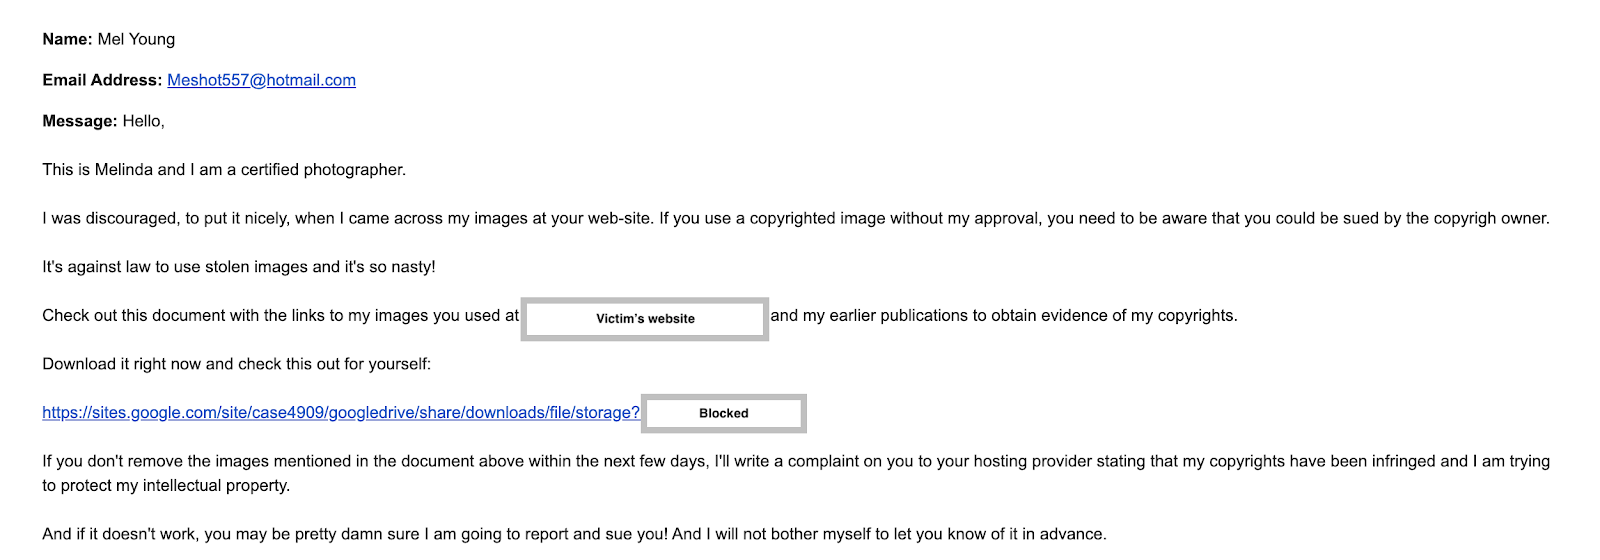 An example of an image licensing scam